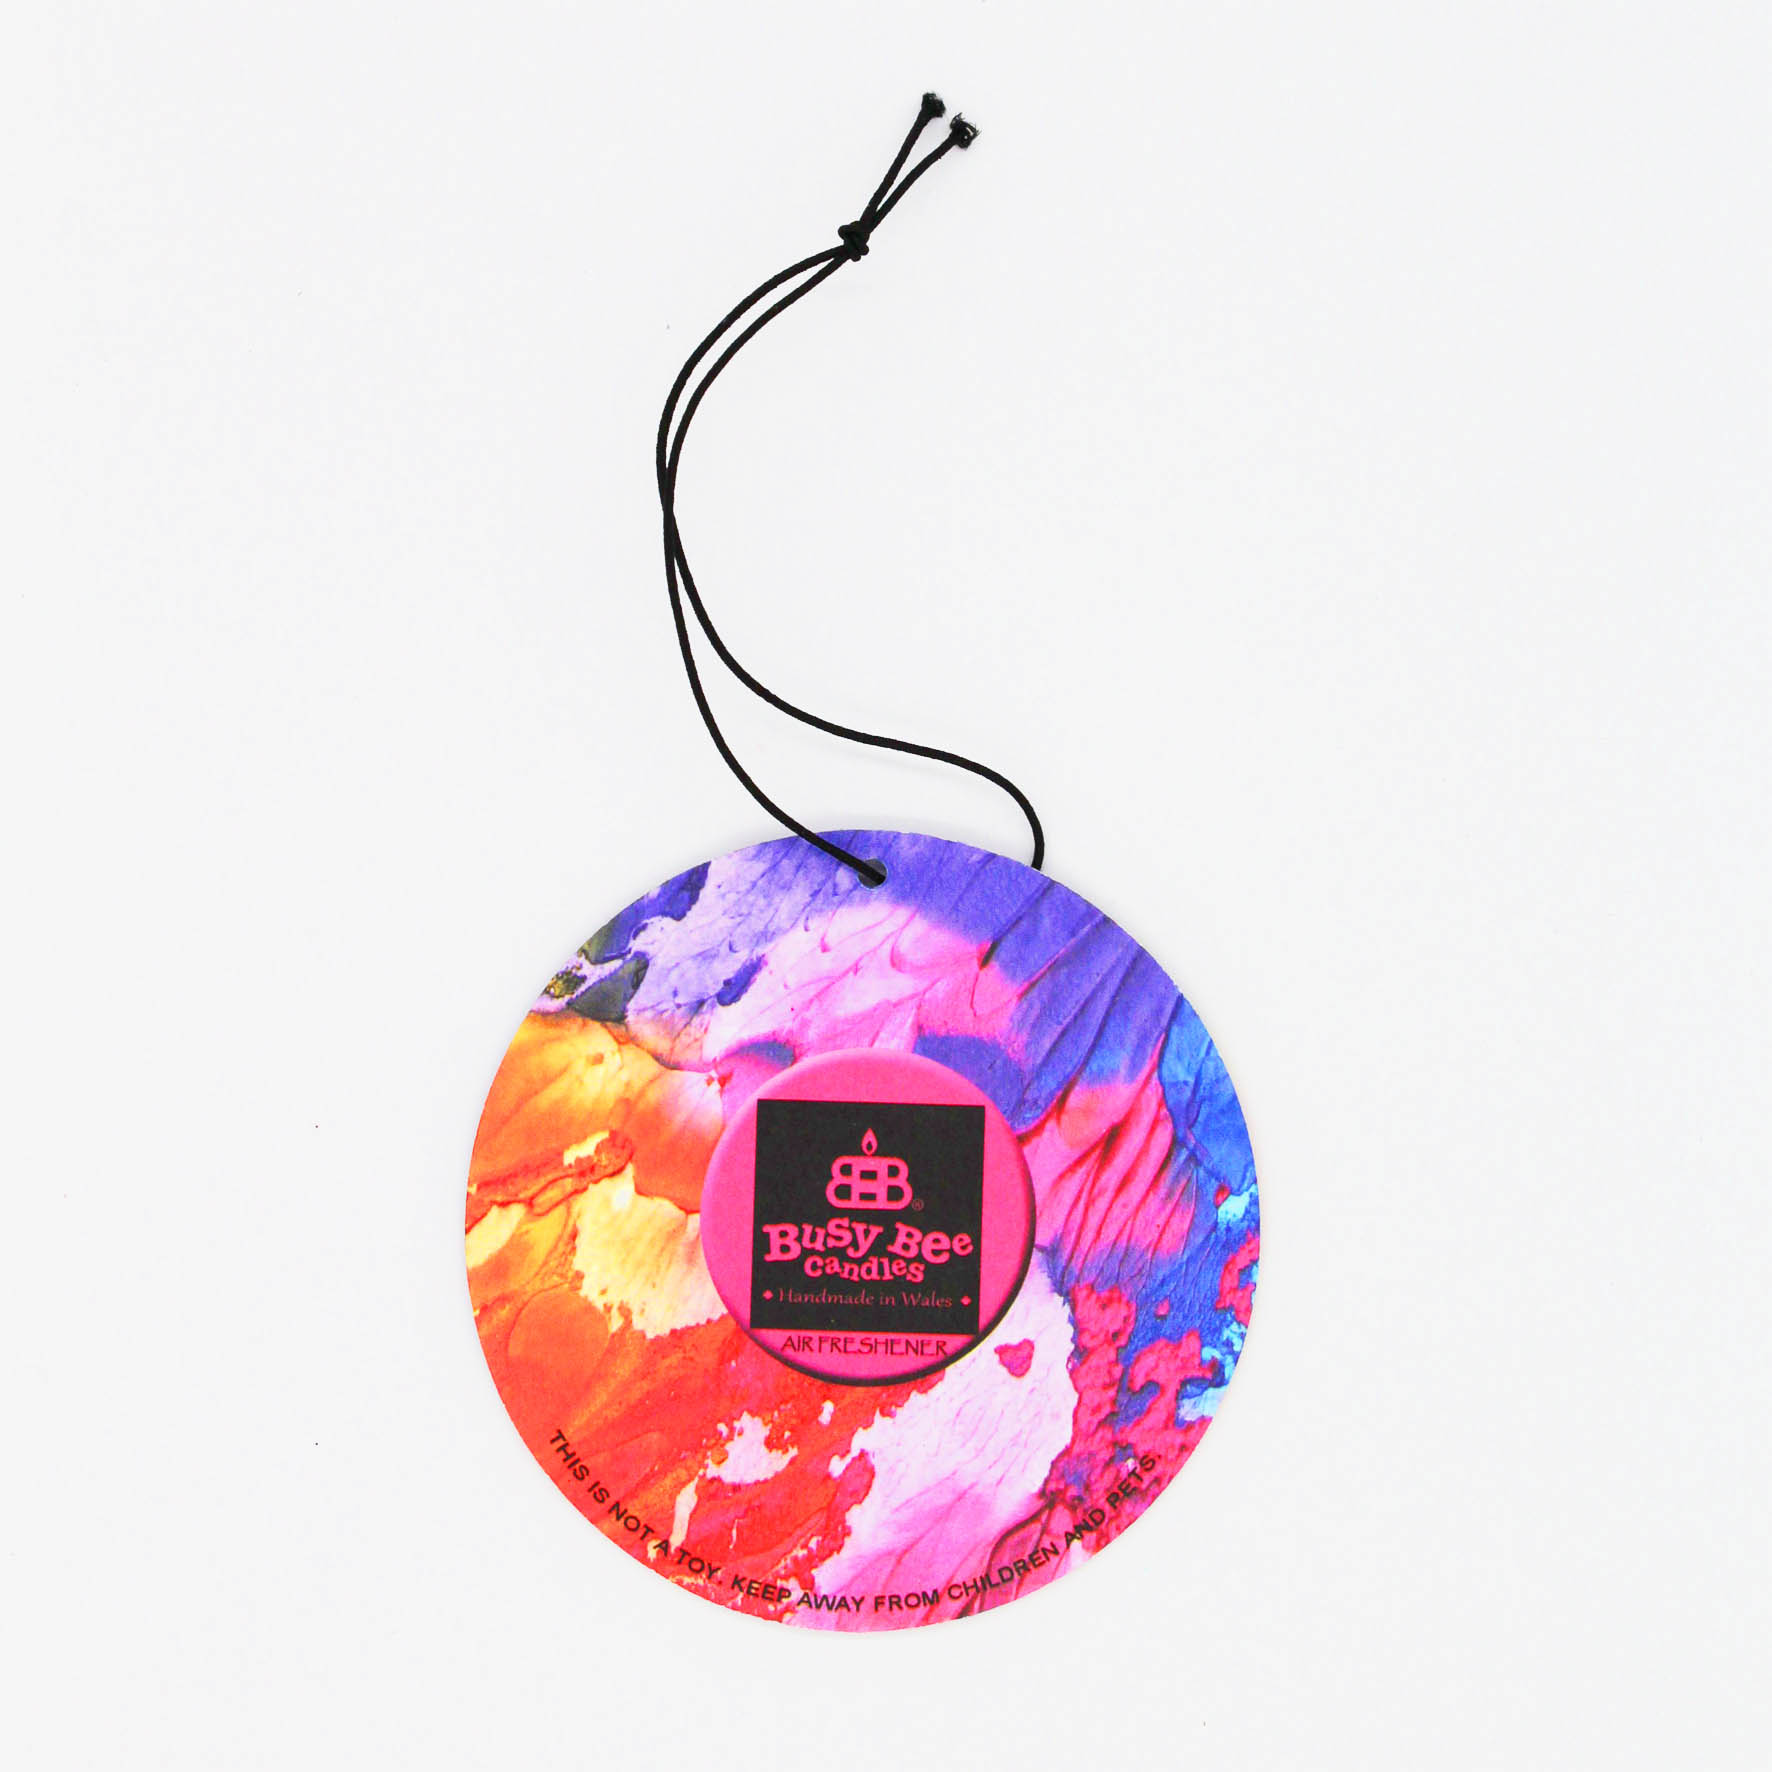 Champagne & Roses Hanging Air Freshener